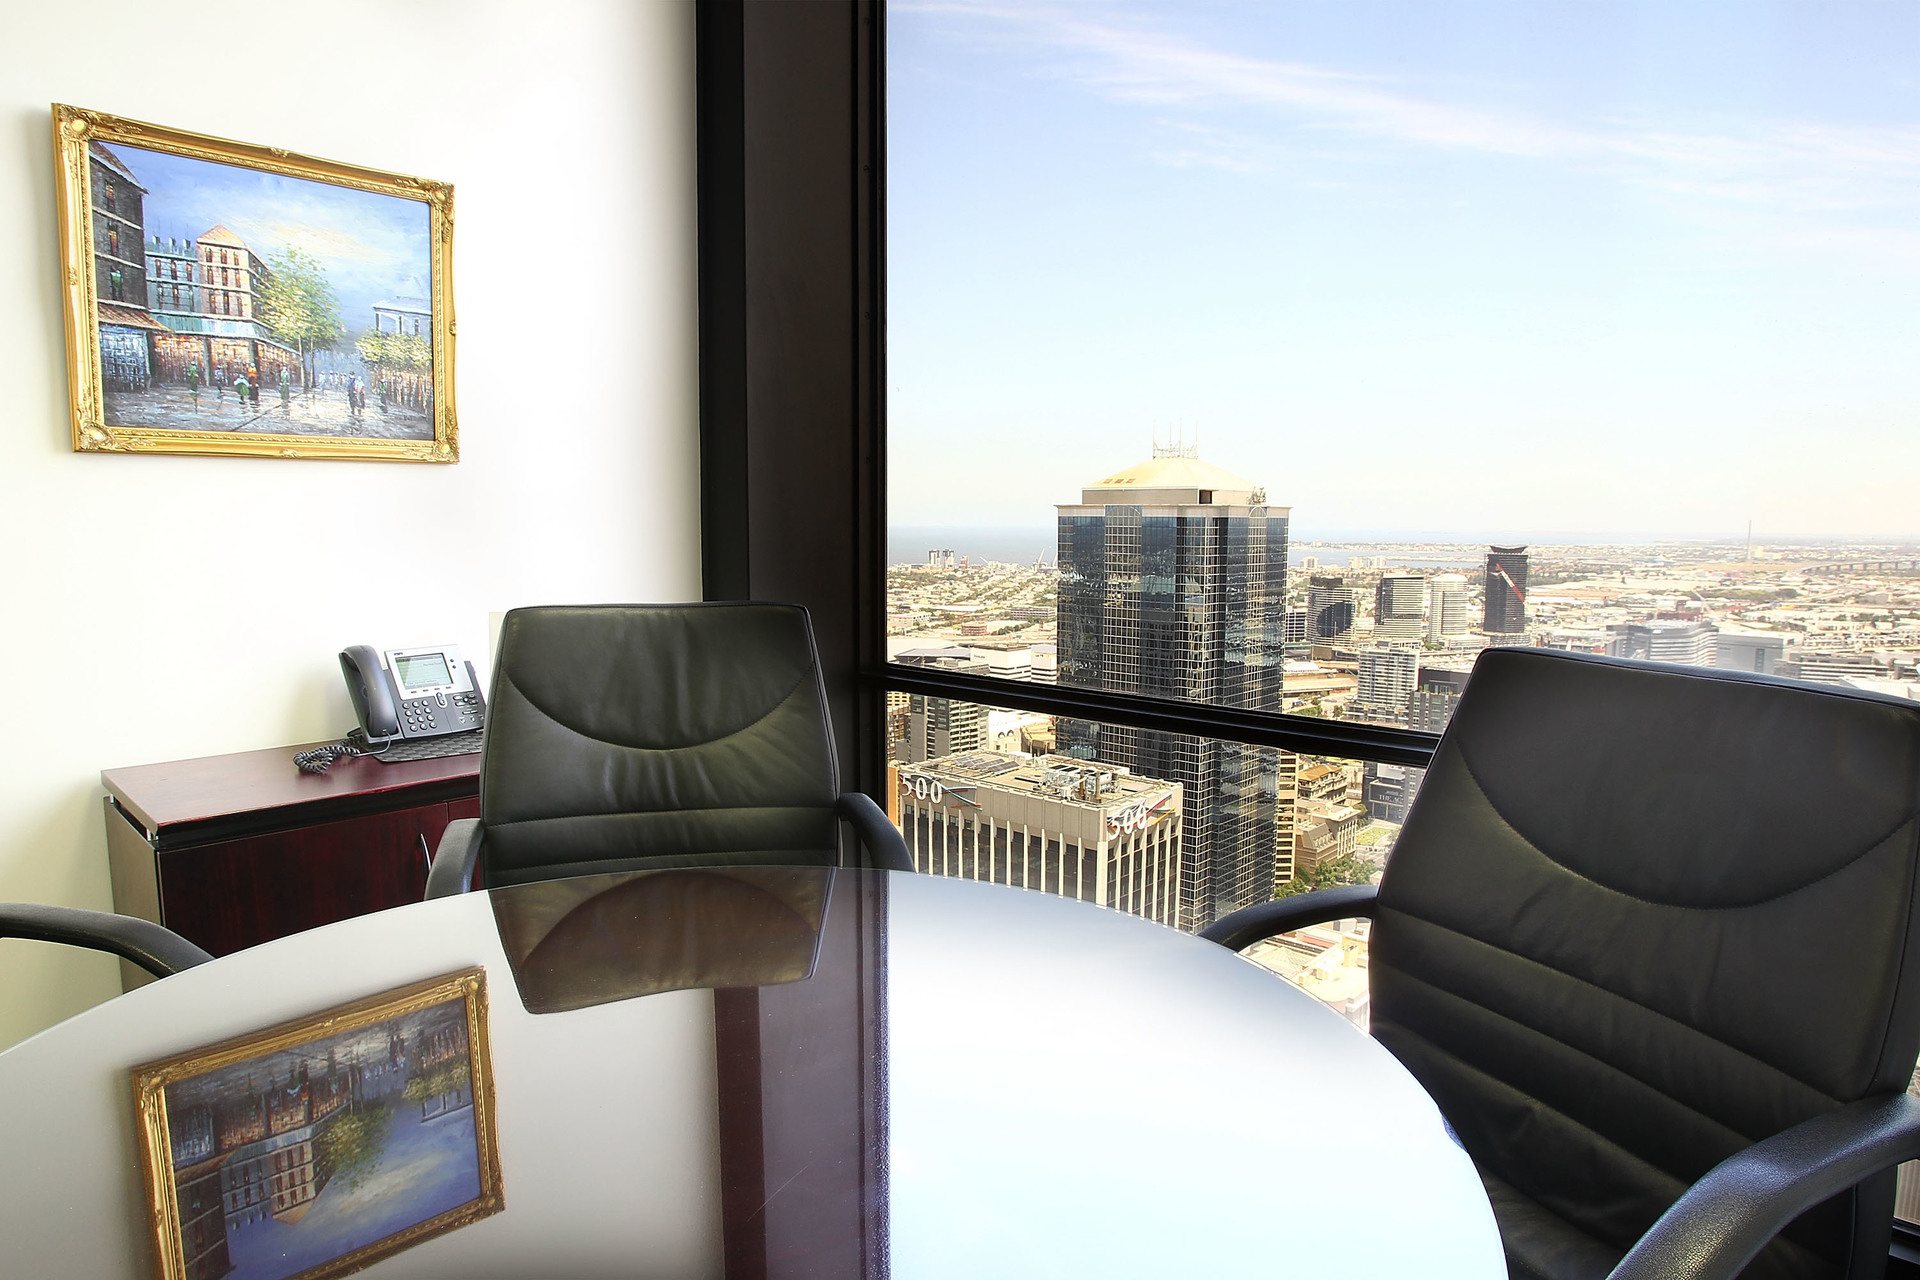 IMPRESSIVE VIEWS OFFICES SPACE WITH MODERN EQUIPMENT AND FACILITIES